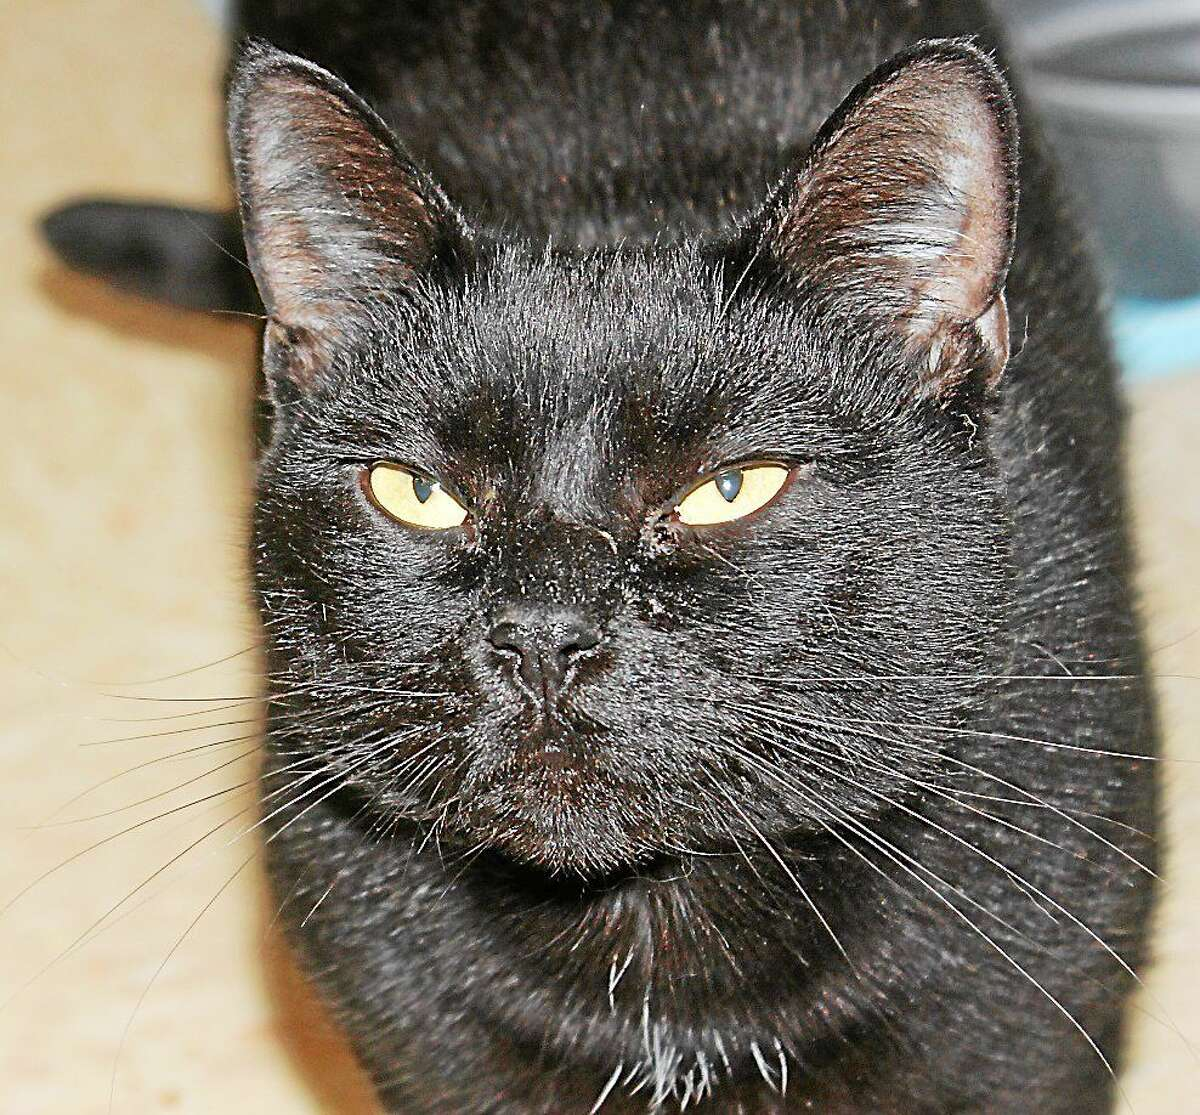 Cat of the Week!! Name: Dorothy Gender: Female Breed: Domestic Short Hair Color: Black Age: 2 years old Iím Dorothy! Iím a very sweet girl. I love to be pet, play, and love attention. I need a home with children over 8 years old and a home with at least one other cat or another Cat Tales cat. Please adopt me! (No Dogs) On the Web: http://www.cattalesct.org/cats/dorothy/ PH: (860) 344-9043 Email: Info@CatTalesCT.org